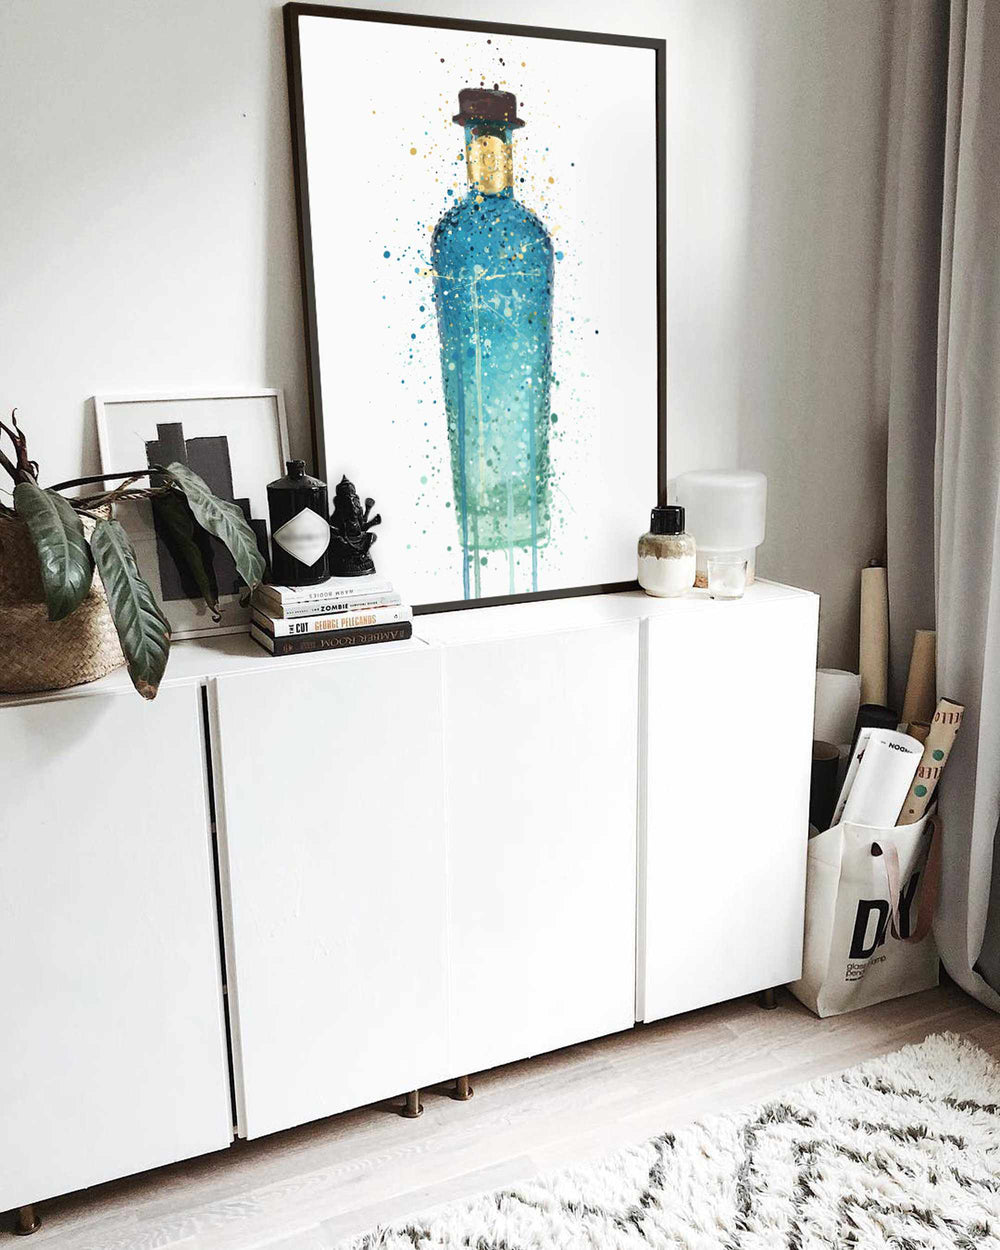 Gin Bottle Wall Art Print 'Atlantis'